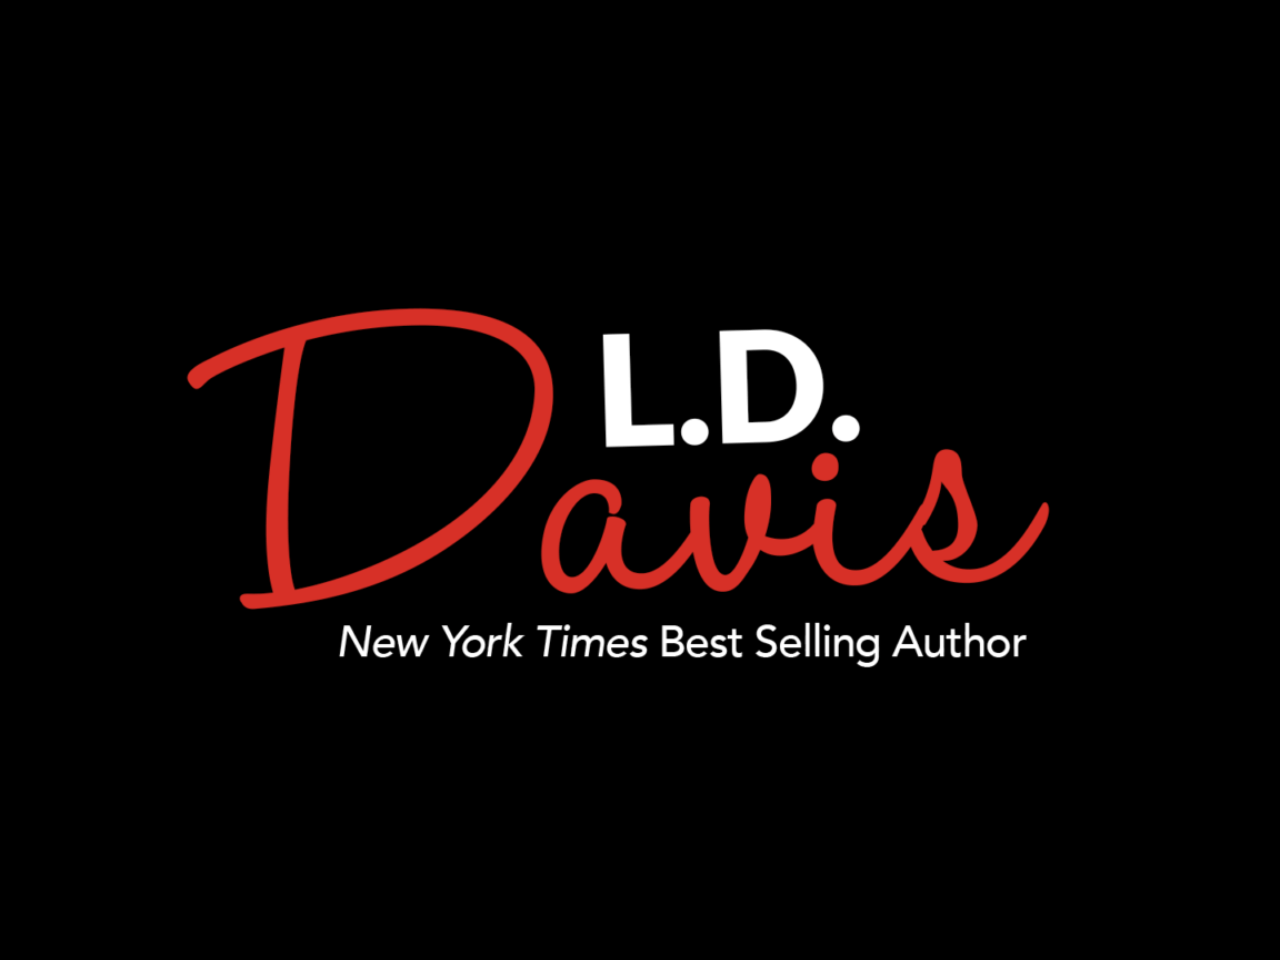 L.D. Davis, New York Times Best Selling Author